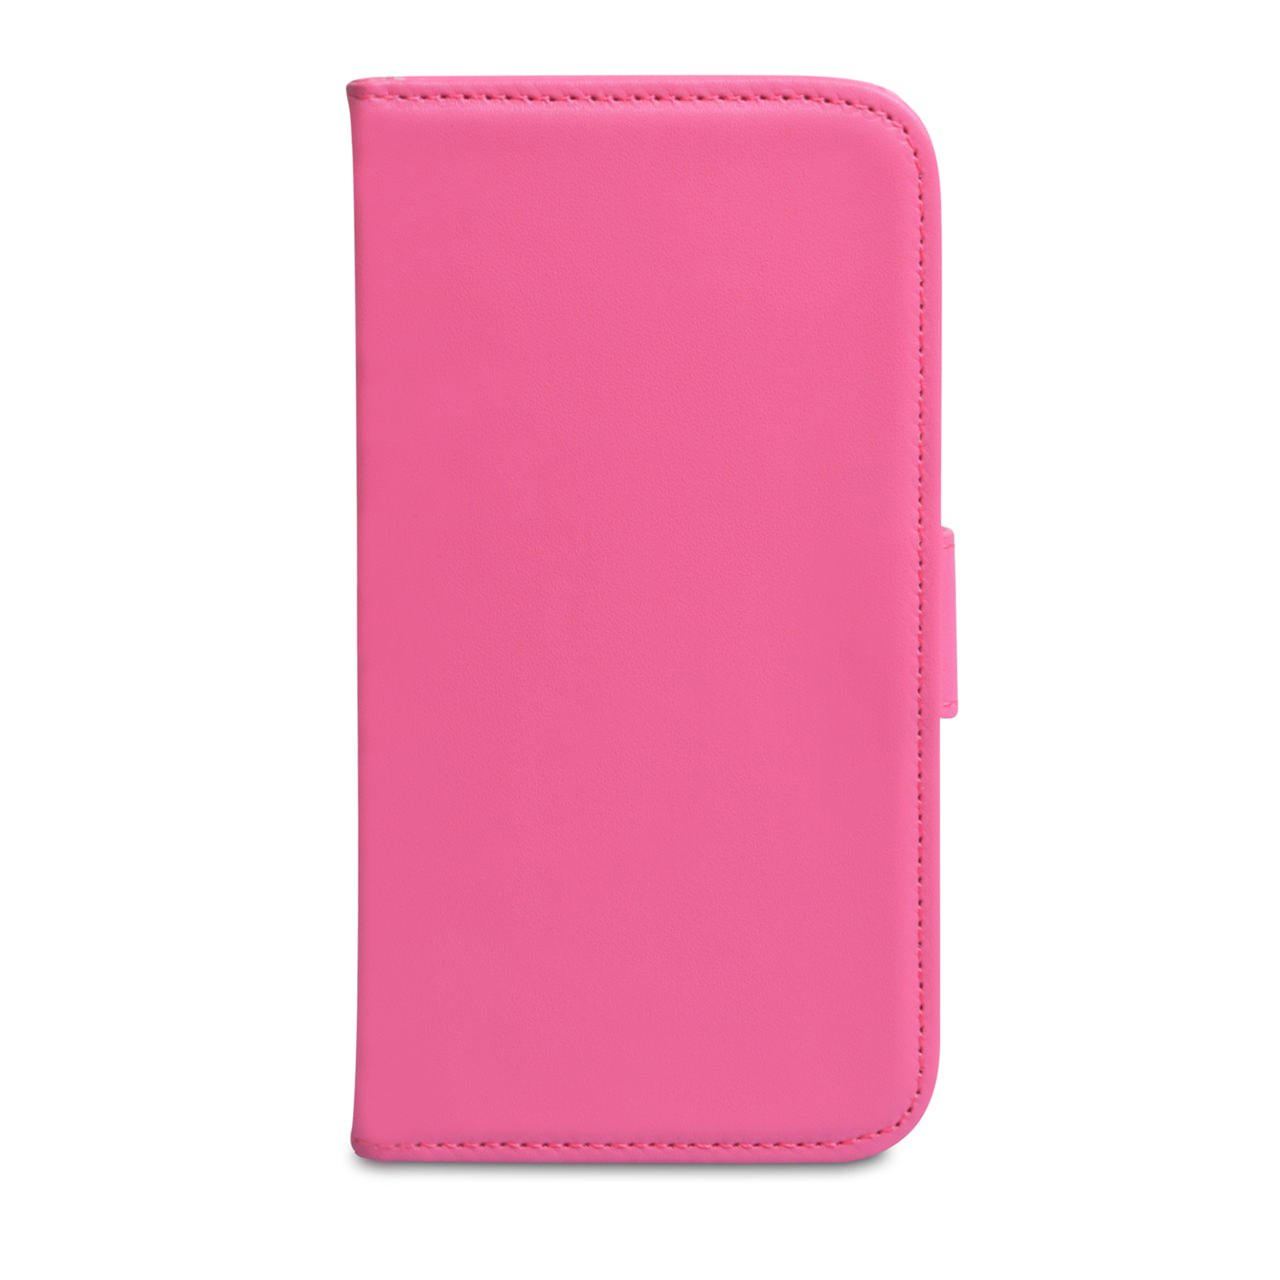 YouSave Samsung Galaxy S4 Active Leather Effect Wallet - Hot Pink